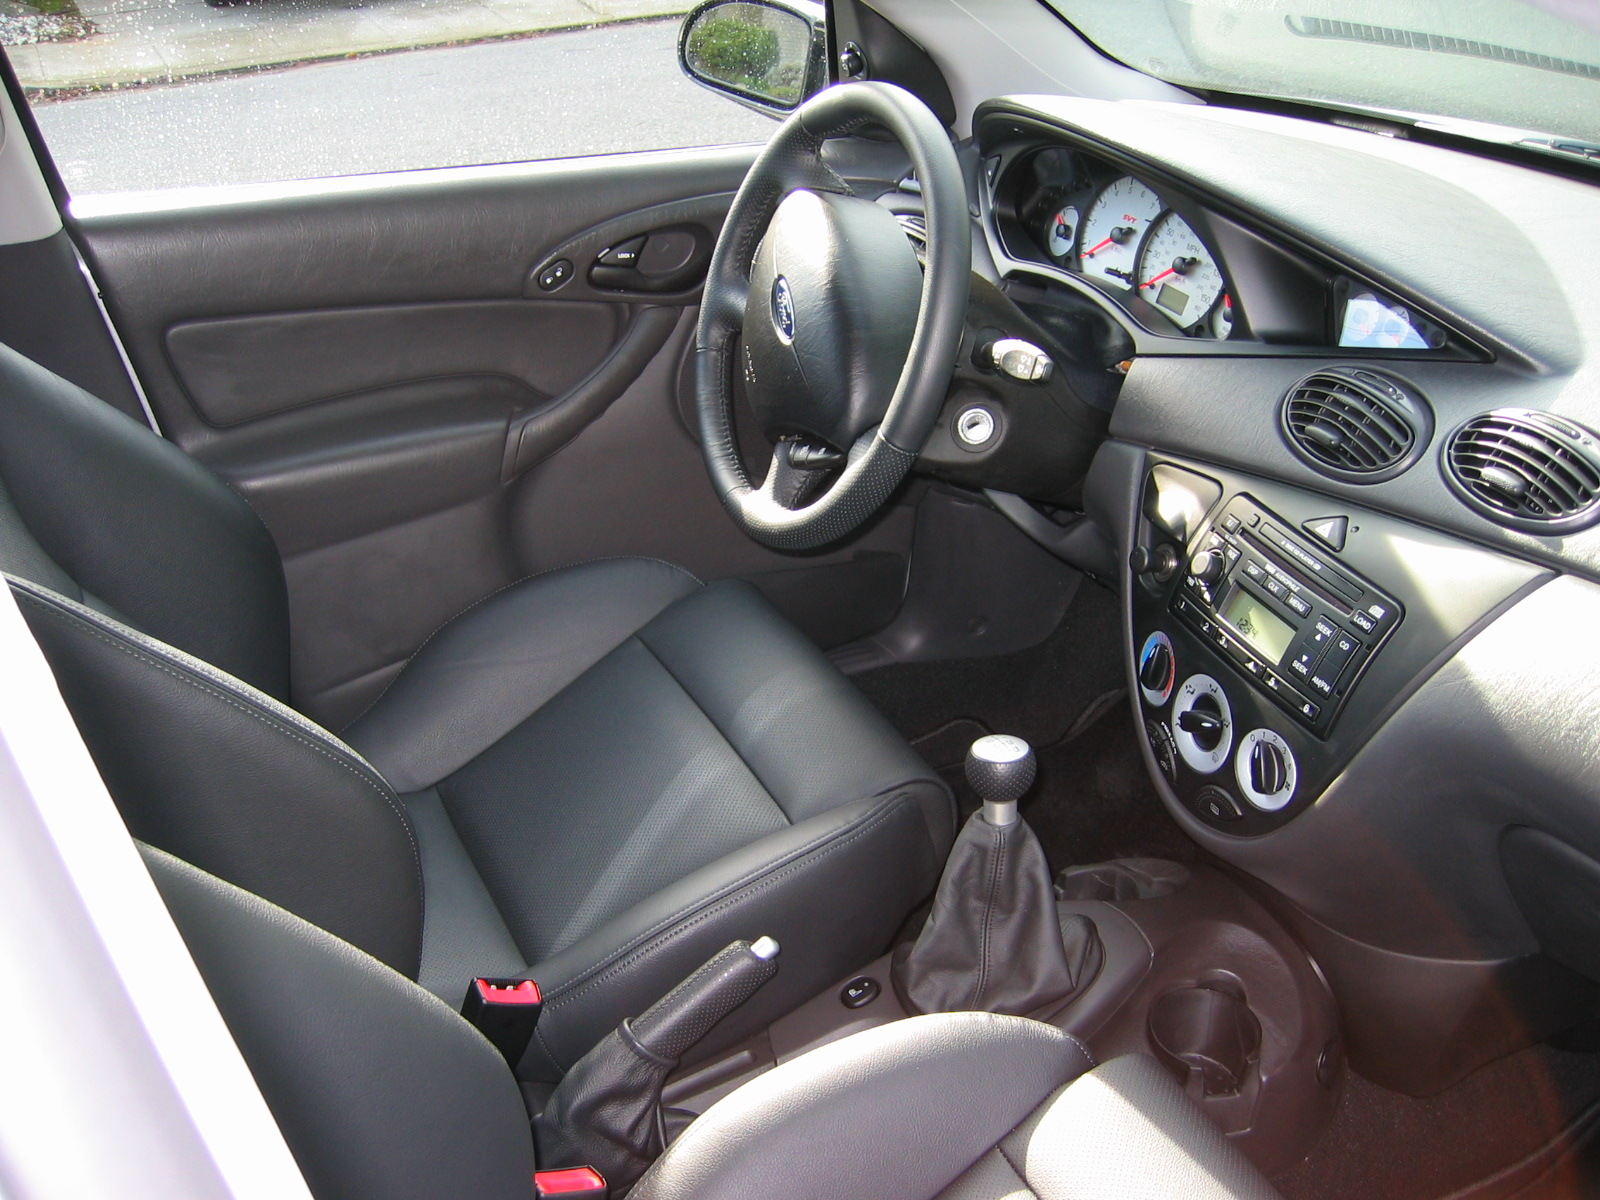 2004 ford focus svt interior pictures cargurus 1600x1200